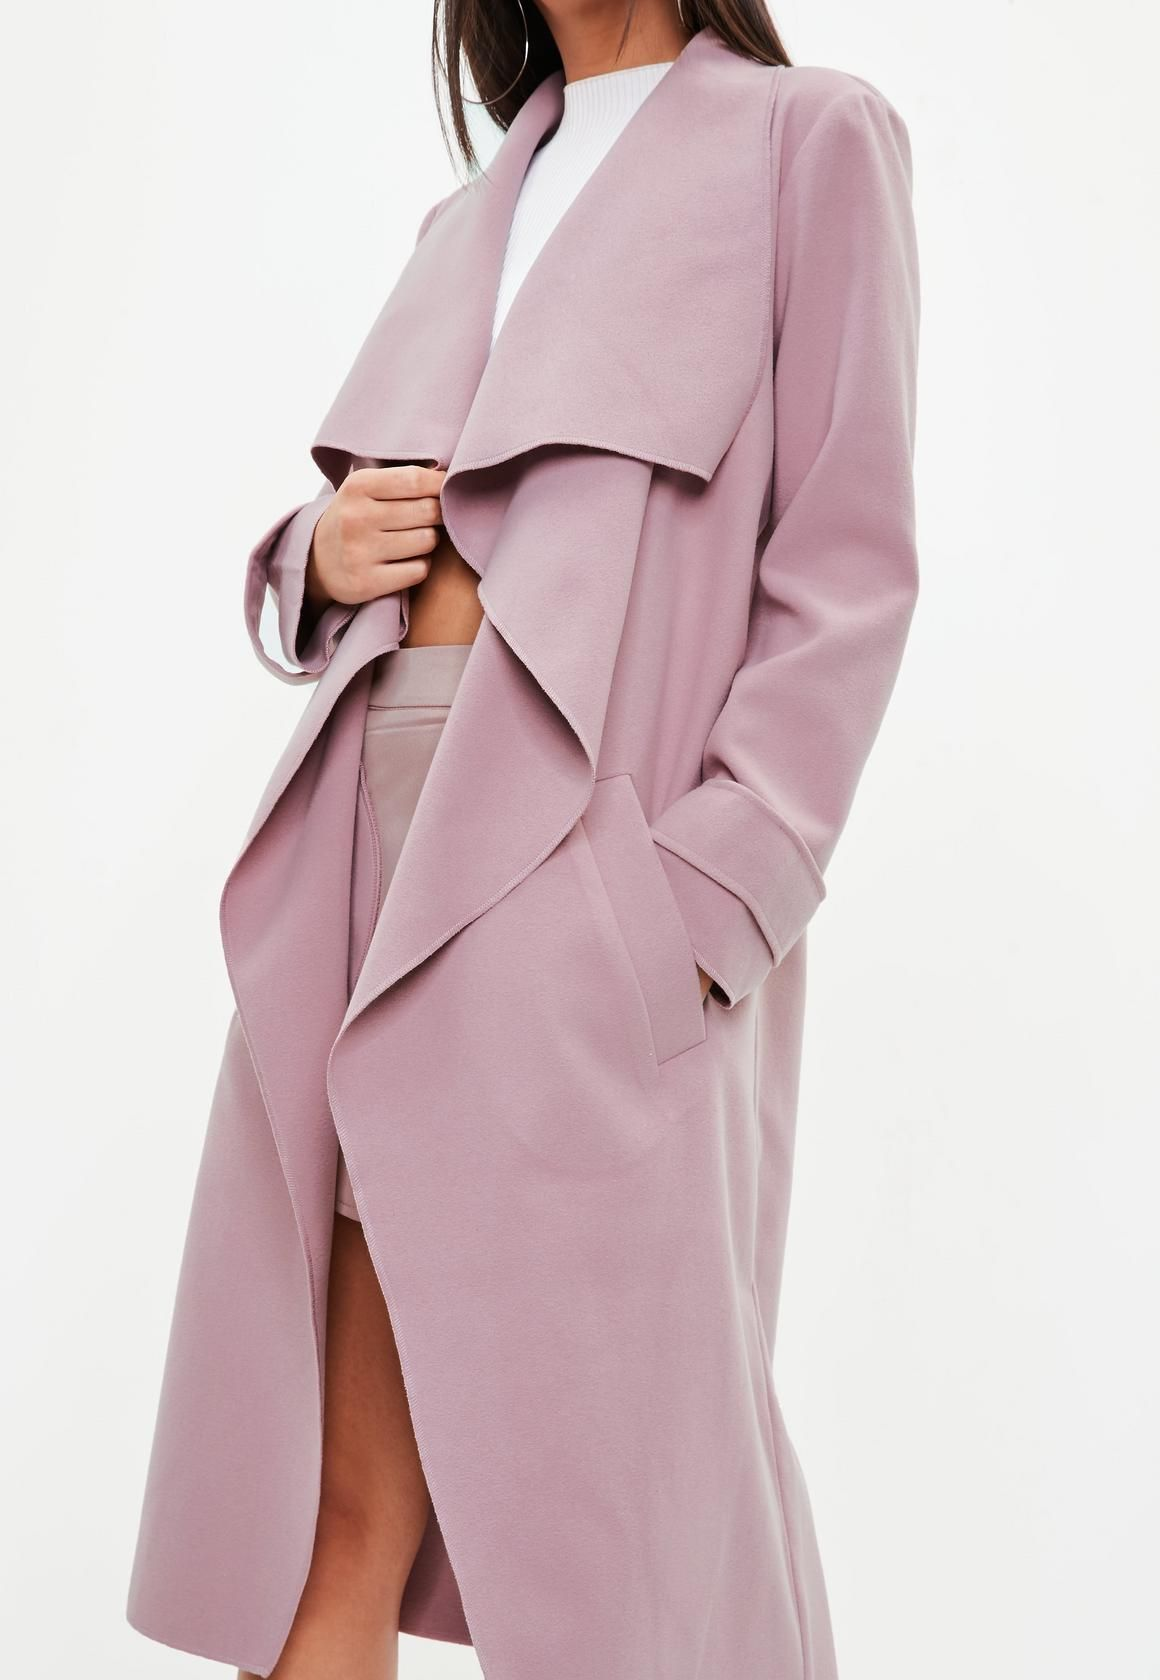 ed0f5235b07e7 Missguided - Mauve Oversized Waterfall Duster Coat | Fashion in 2019 ...